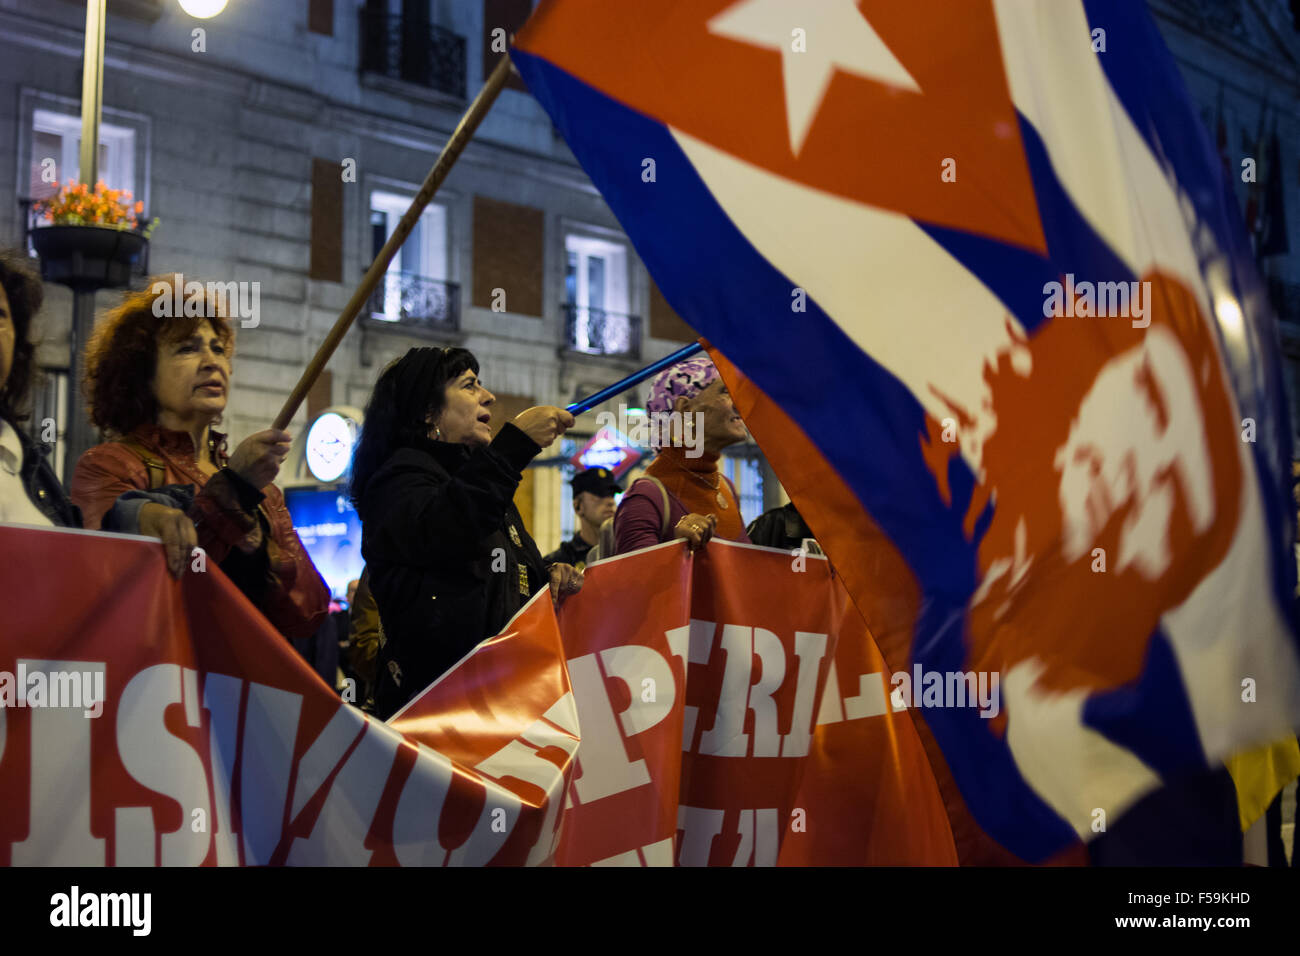 Madrid, Spain. 30th Oct, 2015. People wave flags during a demonstration in Madrid against imperialism in Latin America. - Stock Image